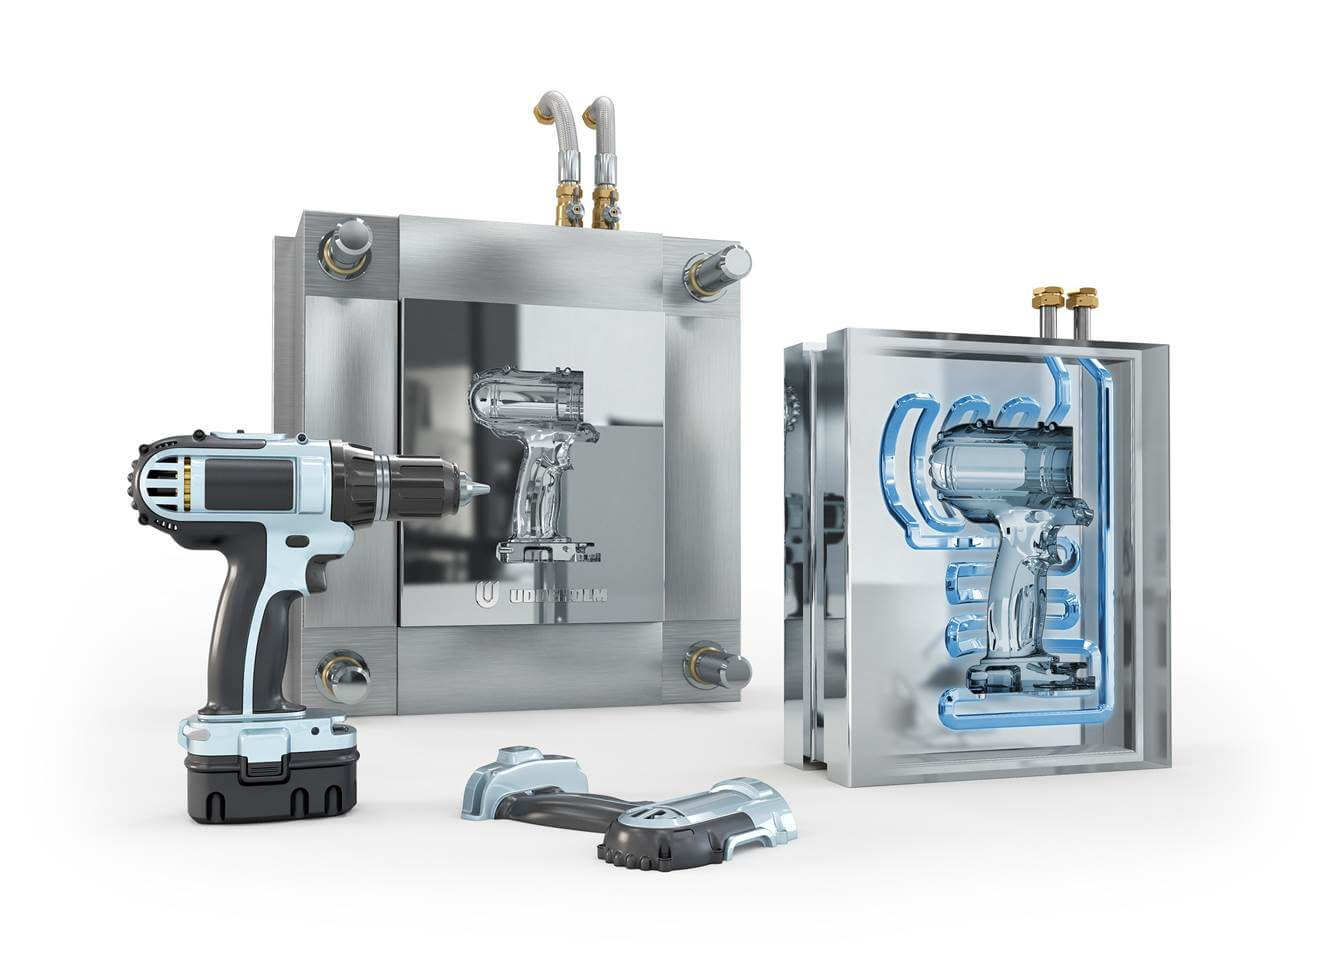 additive manufacturing With additive manufacturing, hirschvogel provides the entire process chain, from  part design and development to generative part production in house.